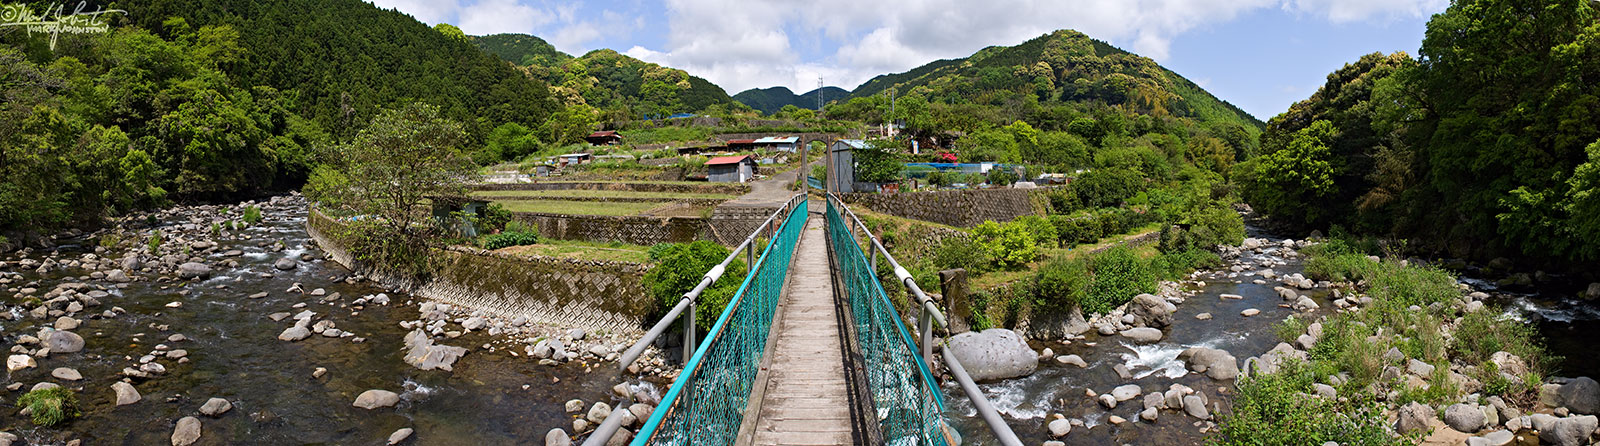 "Footbridge across the Kawazu River [河津川] above Yugano[湯ヶ野], Shizuoka Prefecture [静岡県], Japan.  For a video and music I composed about my many hours in these beautiful mountains,   click here and scroll down the page that opens to find ""Amagisan Doro ""."